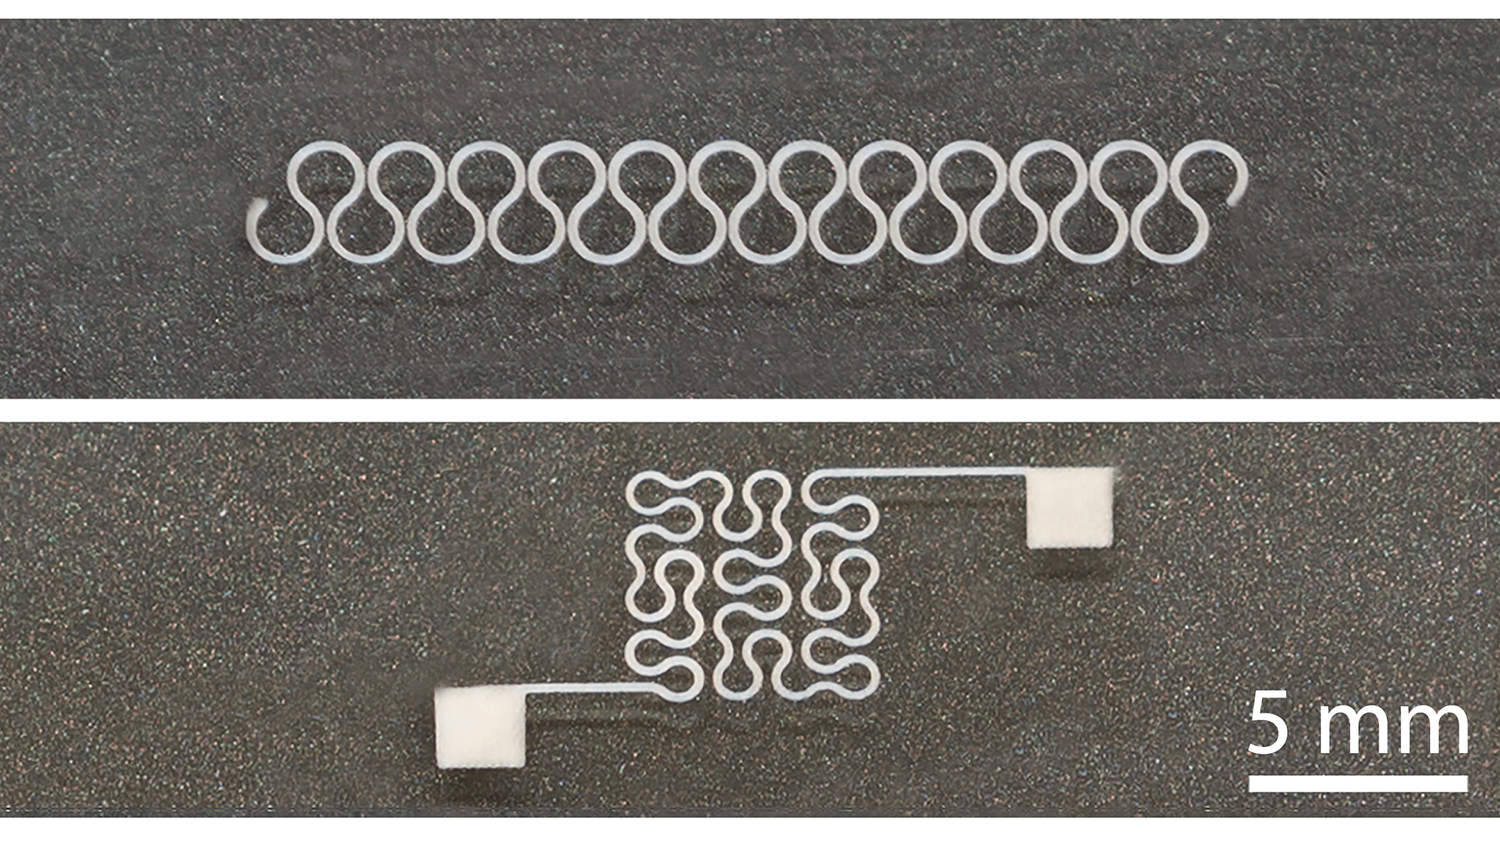 New Technique Allows Printing of Flexible, Stretchable Silver Nanowire Circuits